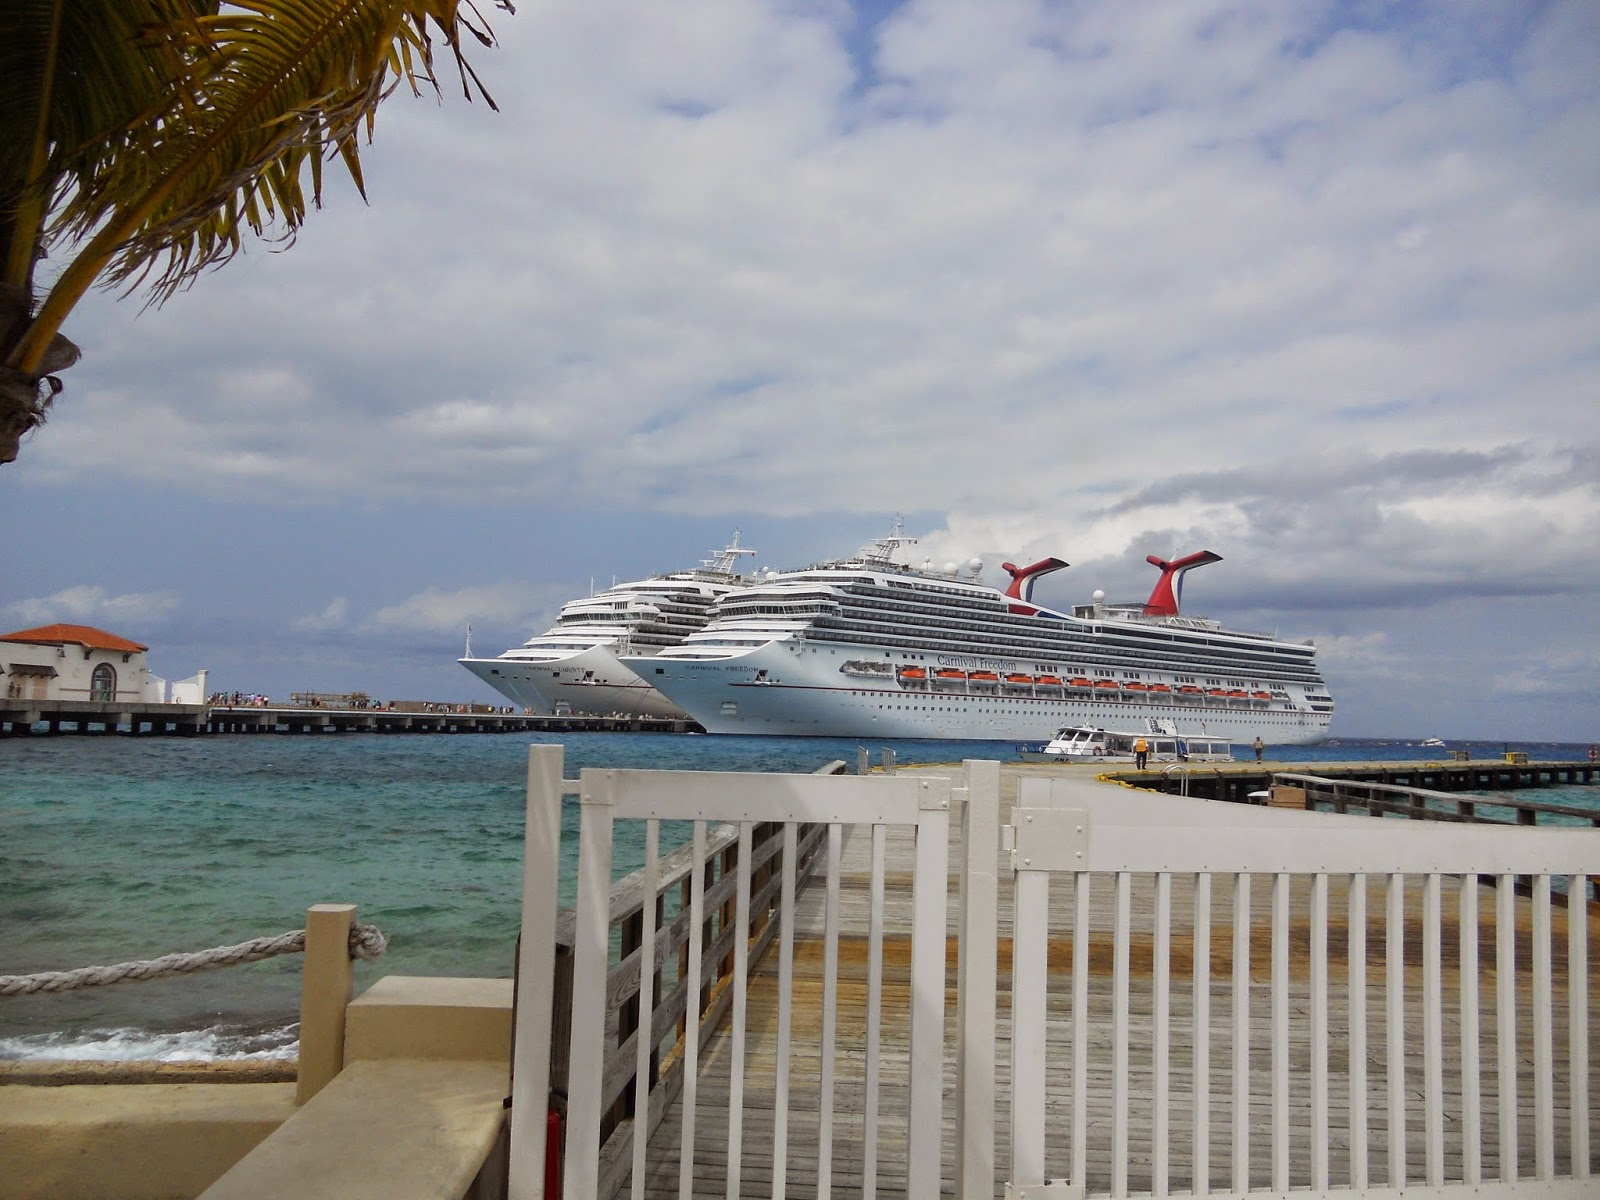 Two Carnival ships in Cozumel